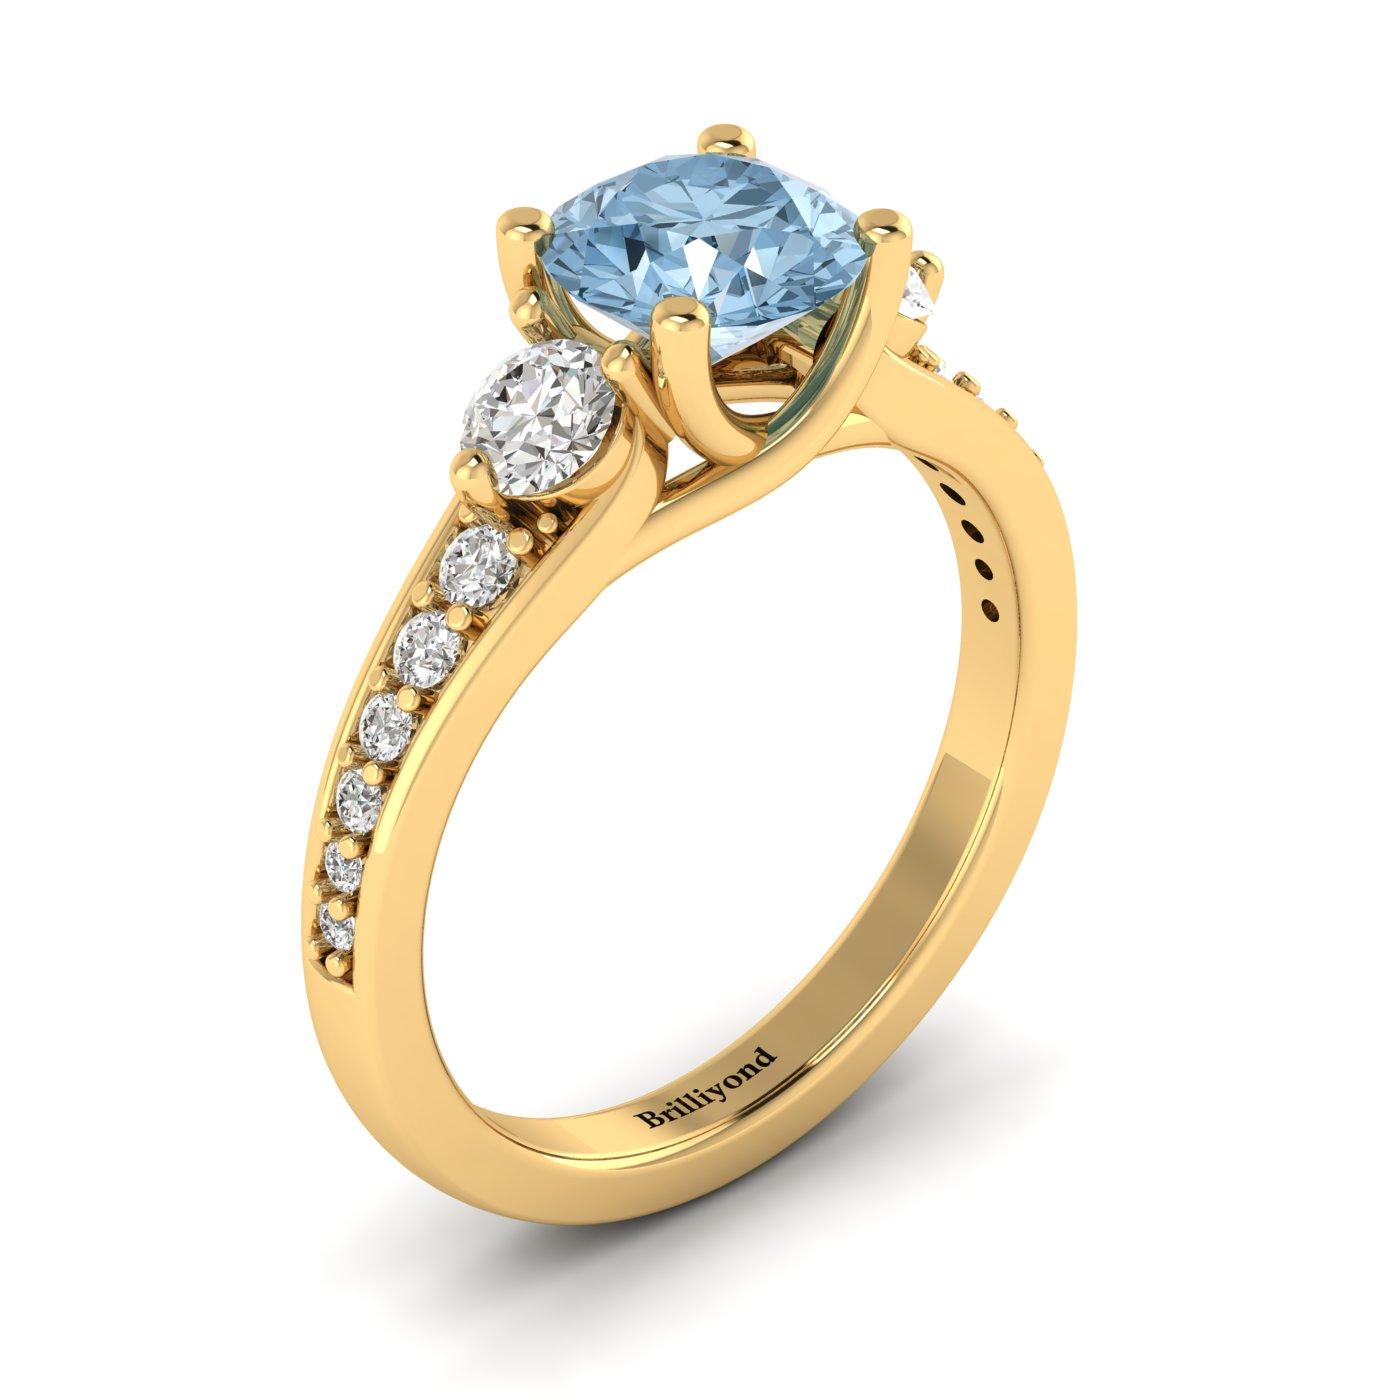 gift carat with aquamarine birthstone vintage filigree march anniversary gold setting unique engagement ring rings yellow media